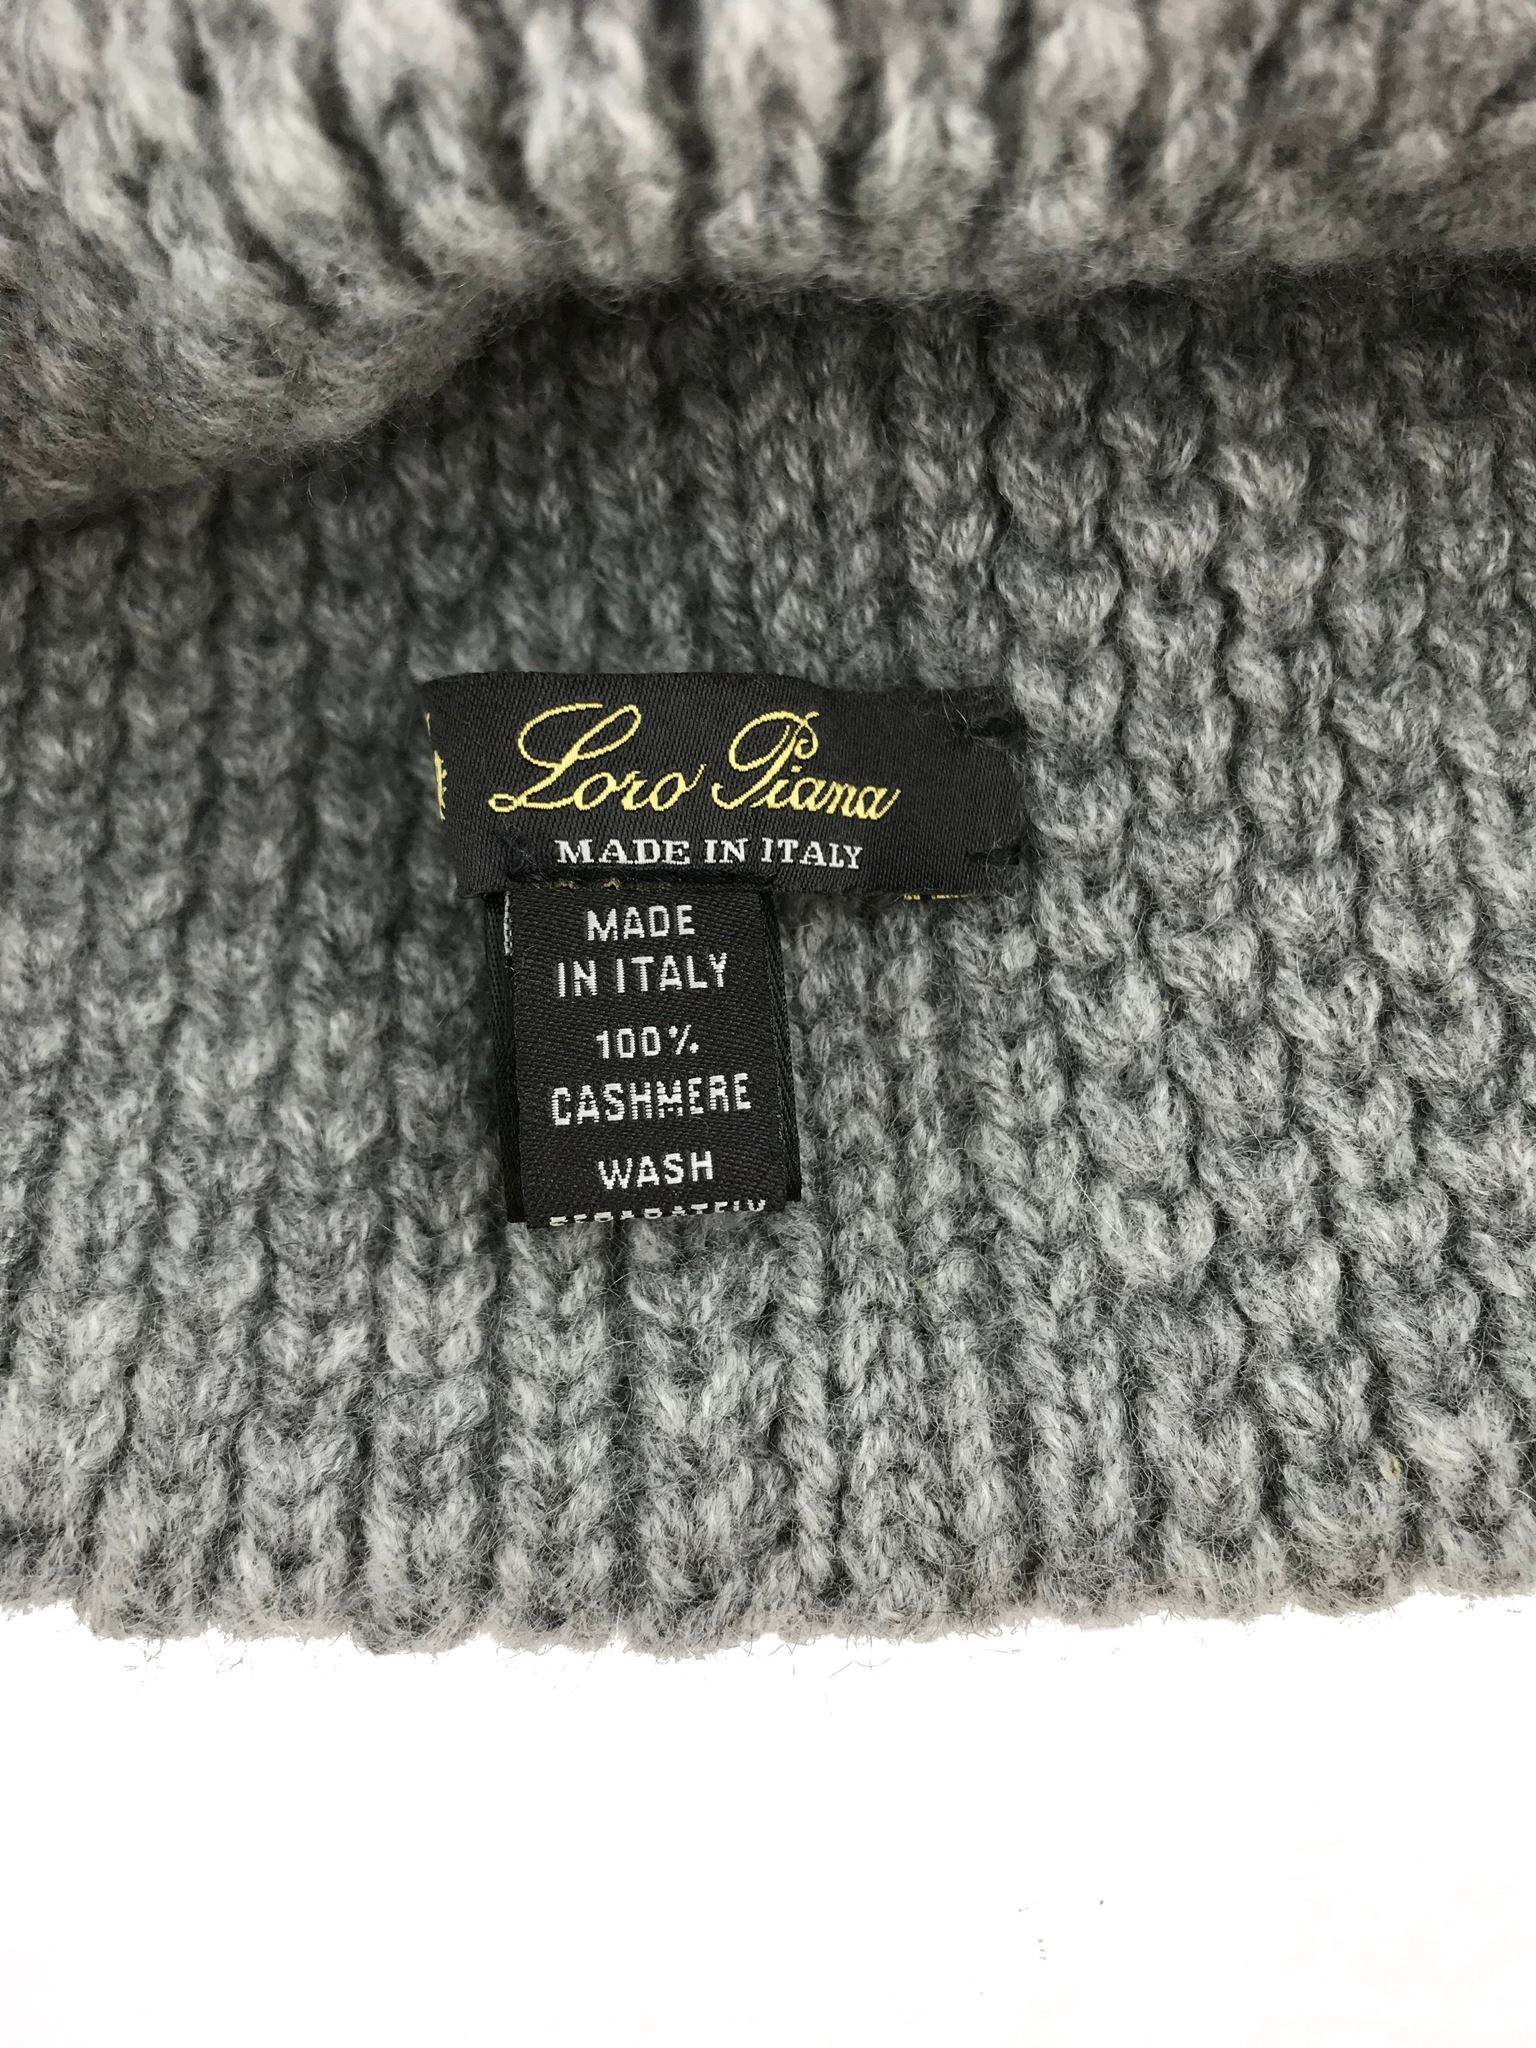 173ad116 Loro Piana Rougement Chain-Knit Cashmere Beanie Hat. Liquid error: Index  was out of range. Must be non-negative and less than the size of the  collection.